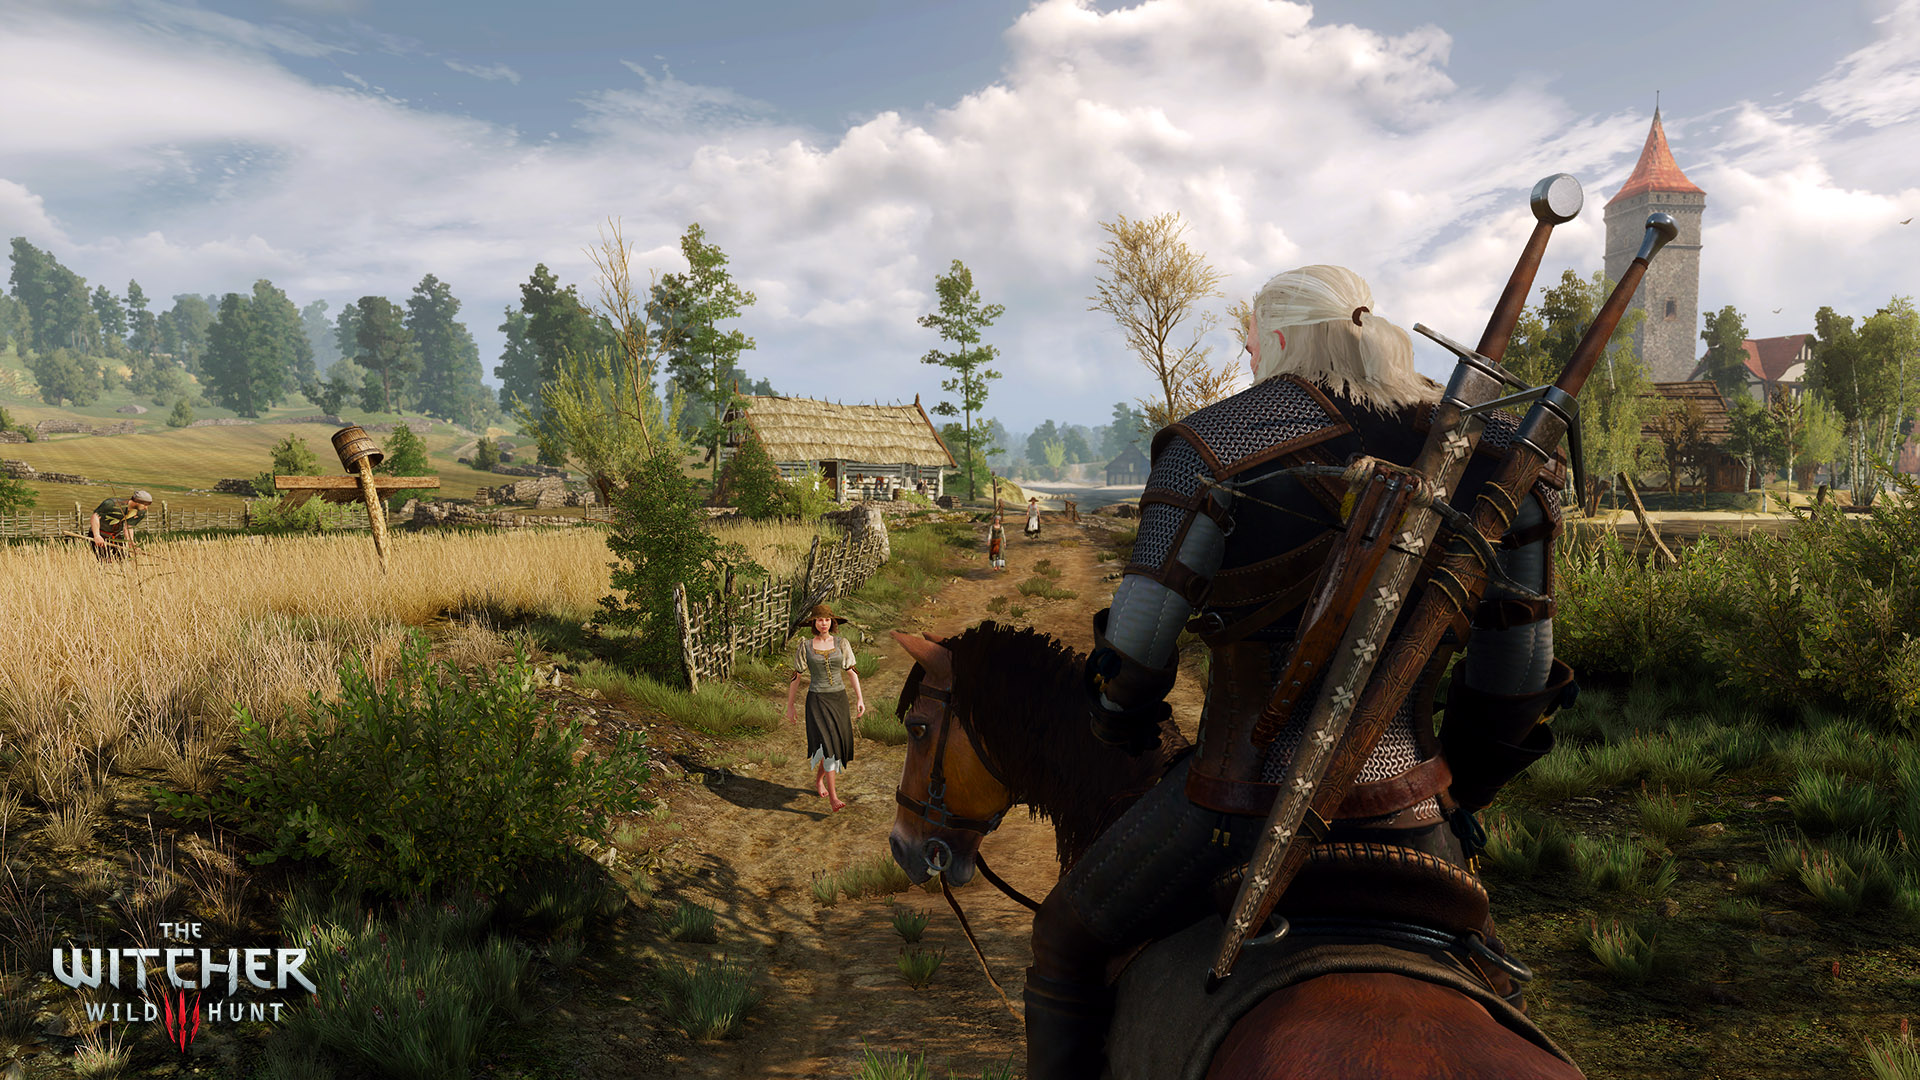 The_Witcher_3_Wild_Hunt_Seems_downright_bucolic--not_necessarily